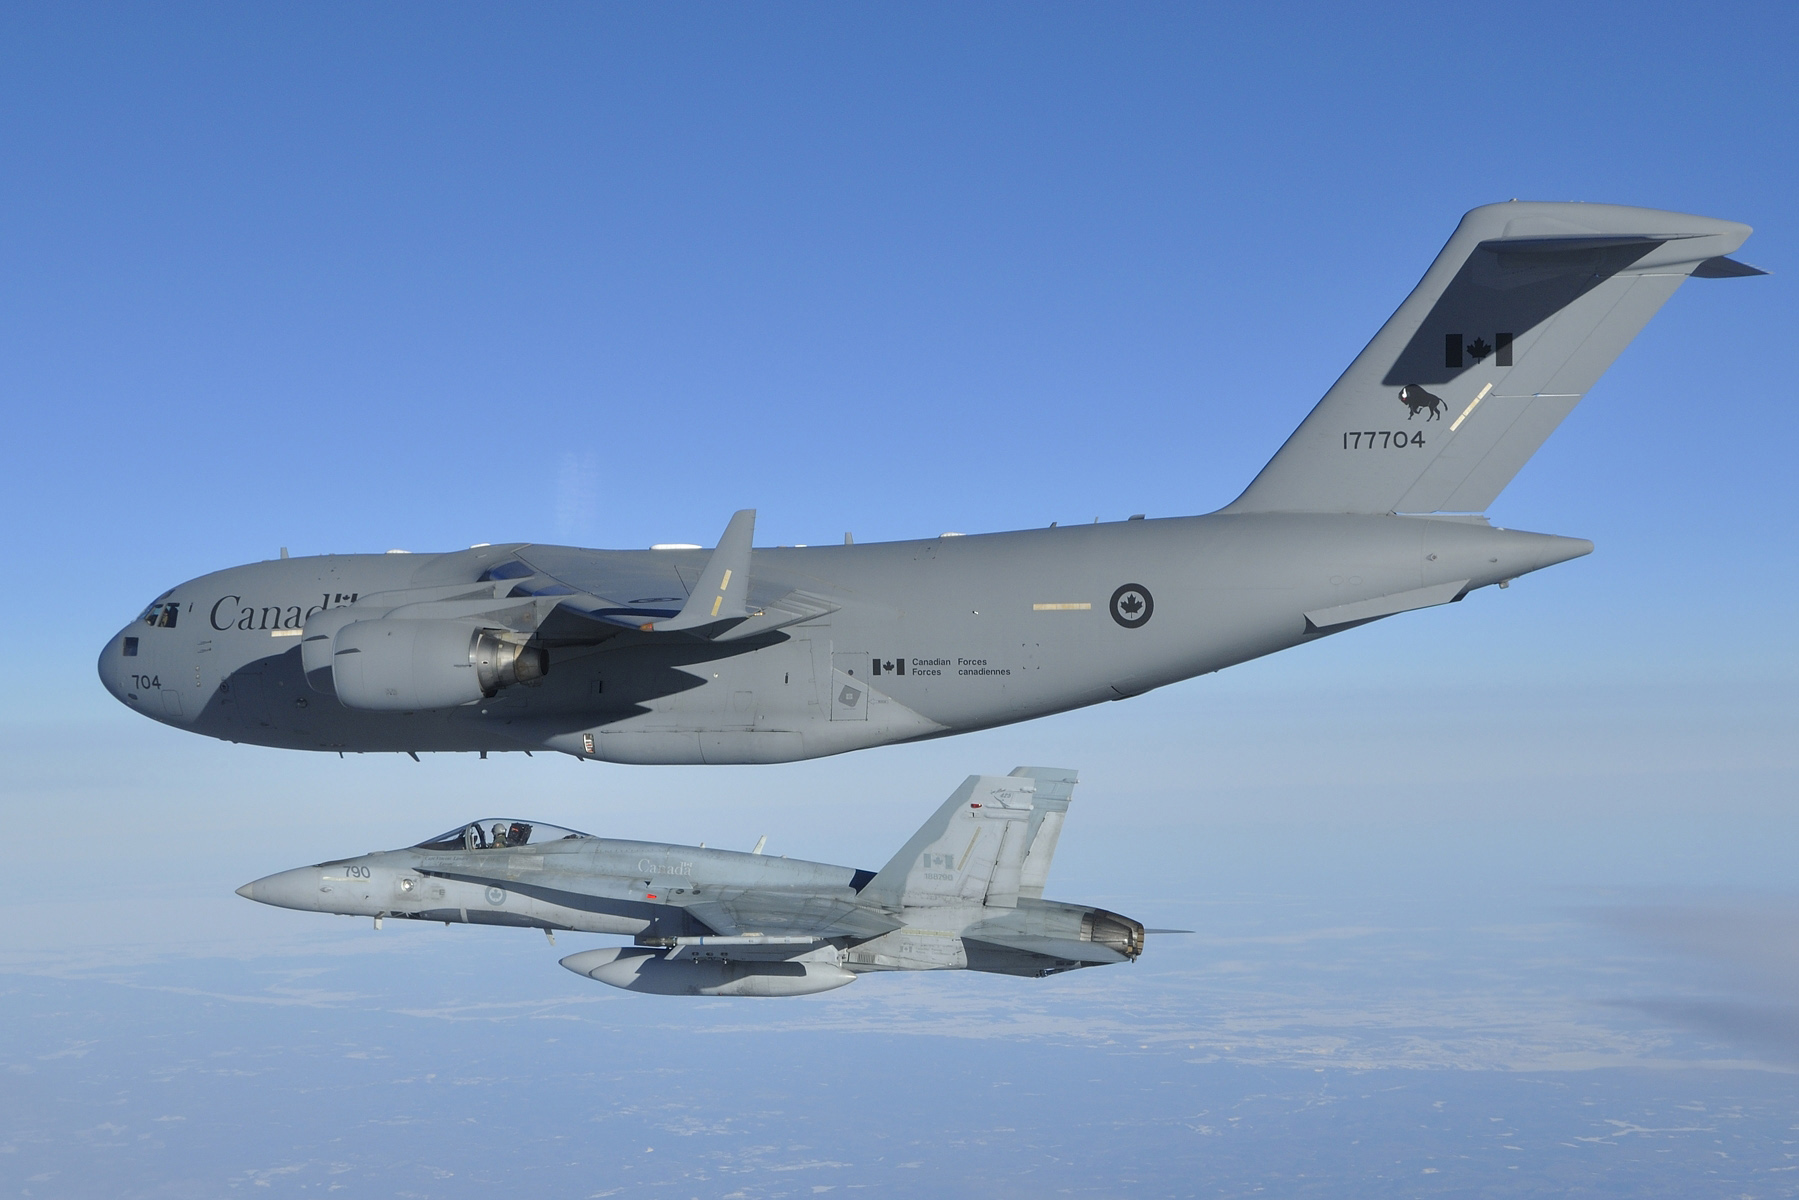 A CC-177 Globemaster III from 429 Transport Squadron, piloted by Captain Capt Dave Hicks, arrives in Ottawa on March 18, 2014. The last Canadian troops to leave Afghanistan were onboard the historic flight. The Globemaster was escorted by two CF-18 Hornet fighter jets from 425 Tactical Fighter Squadron, 3 Wing Bagotville, Quebec. PHOTO: DND